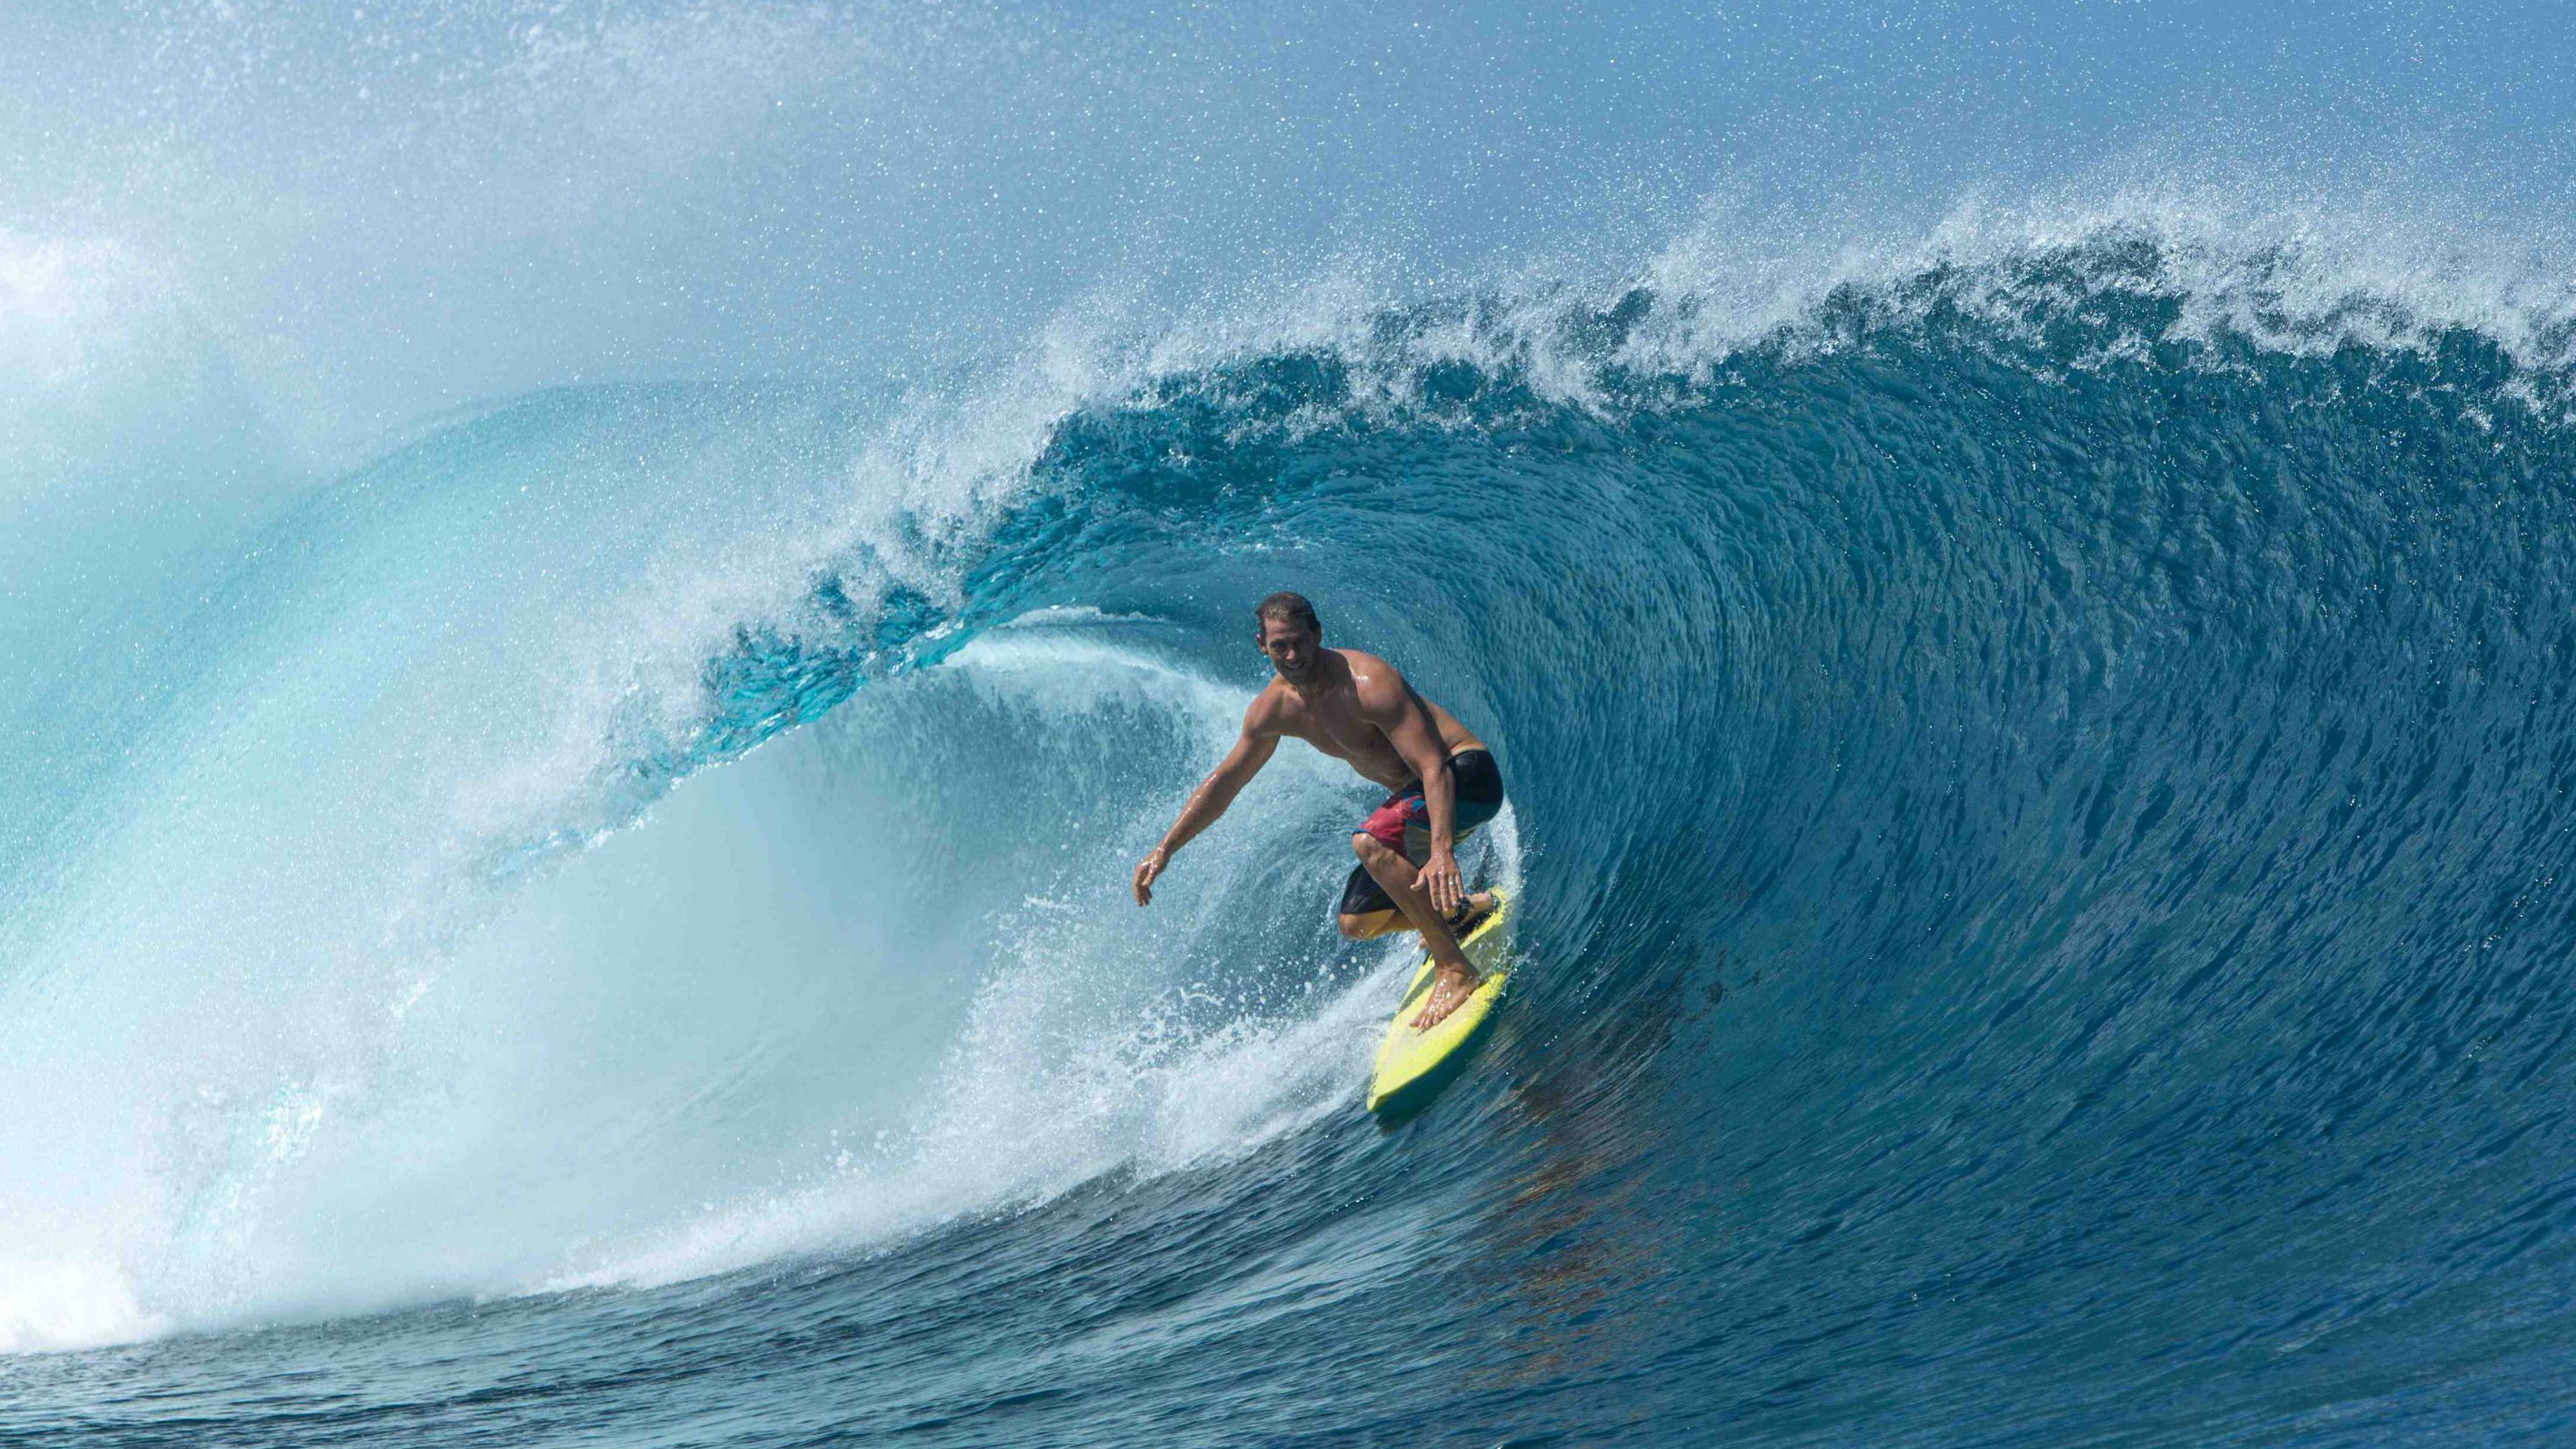 Half-Day Surfing Adventure by Fiji Surf Co